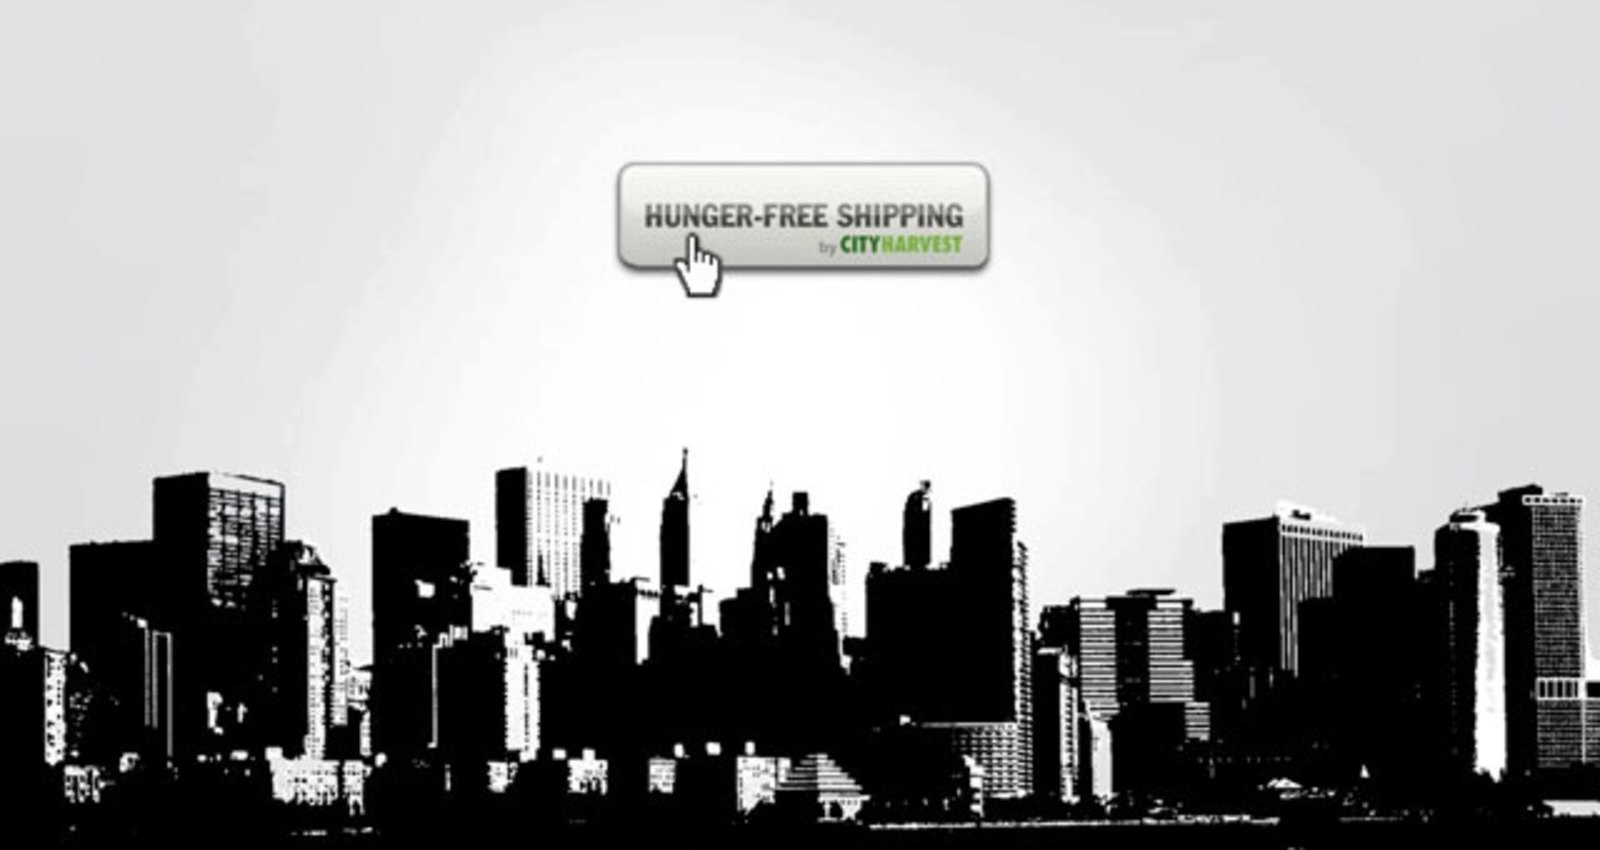 Hunger-Free Shipping